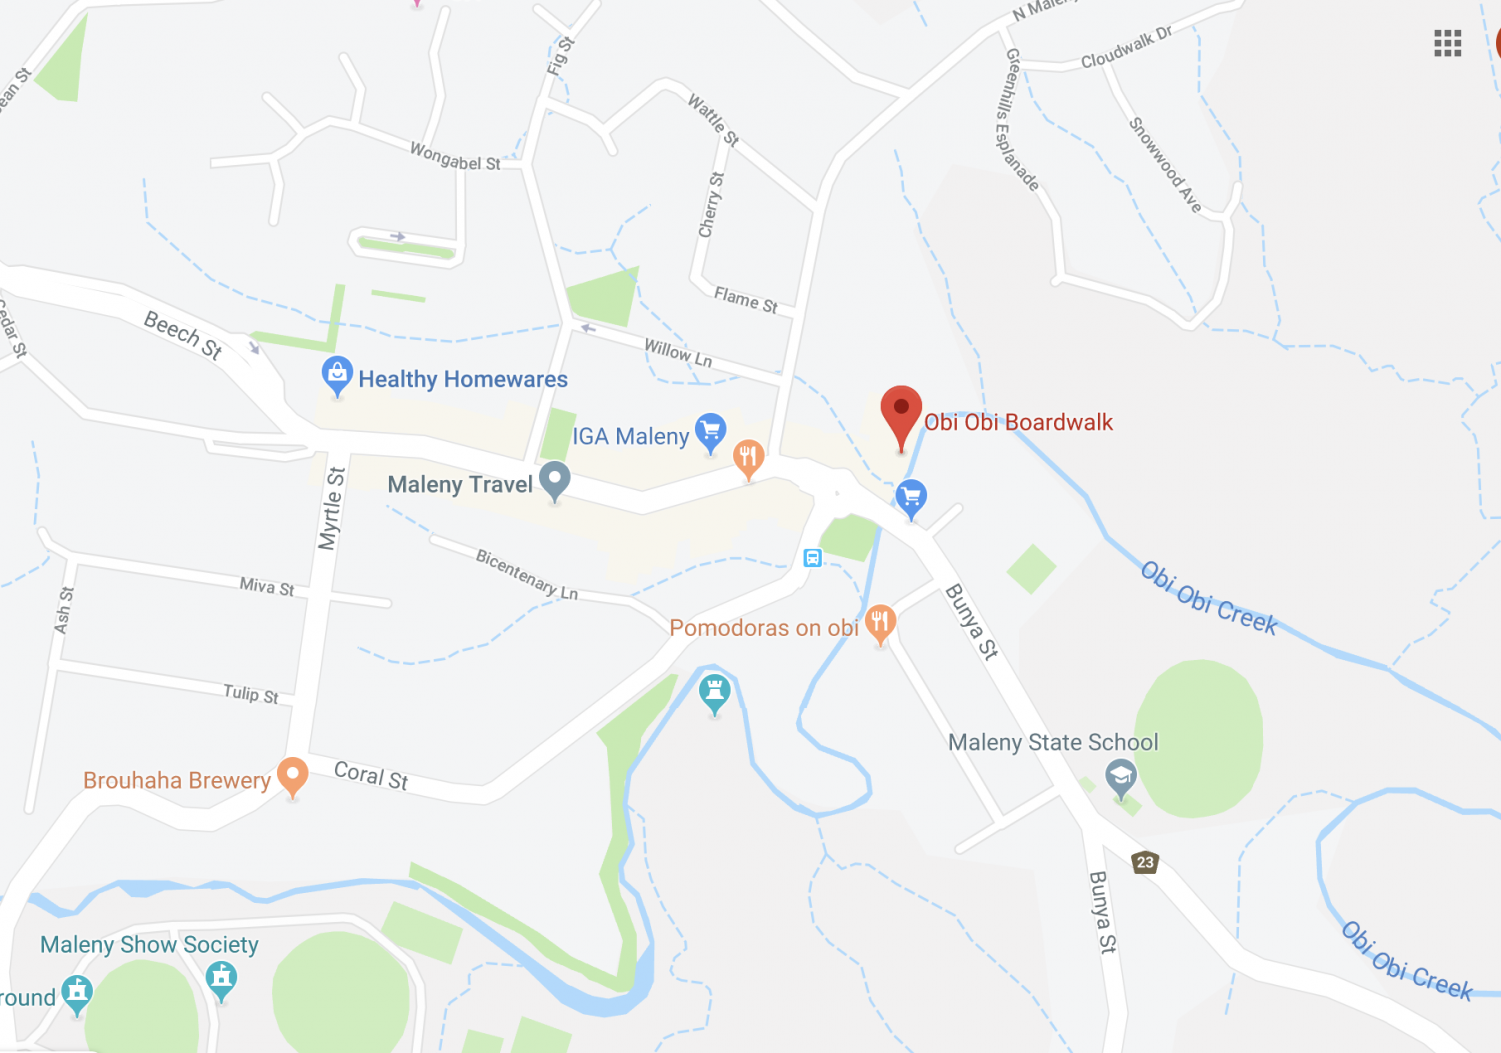 A street map of the Maleny area showing where the Obi Obi Boardwalk is located